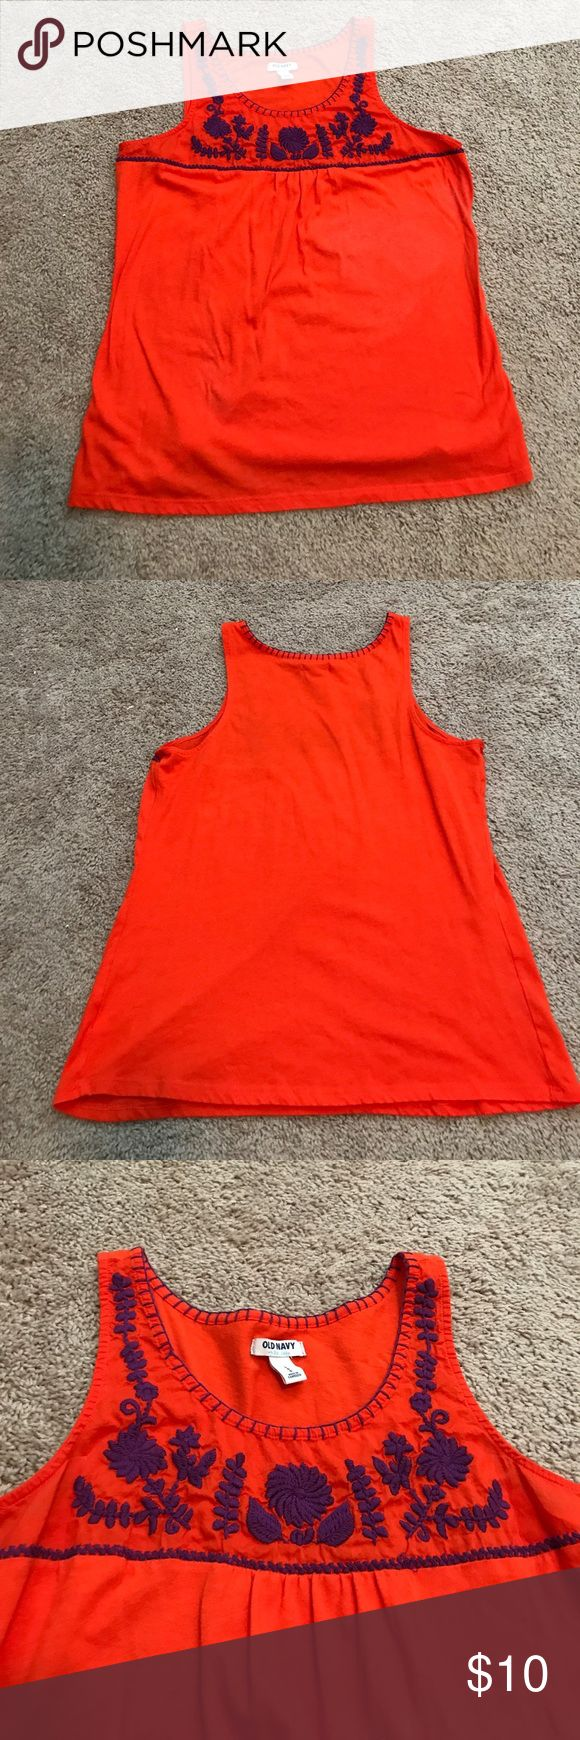 Old Navy Tank Top Orange and Purple Old Navy Tank Top. Has purple Floral stitching at the top on the front. Would be great for the Clemson games! Smoke Free Home Old Navy Tops Tank Tops